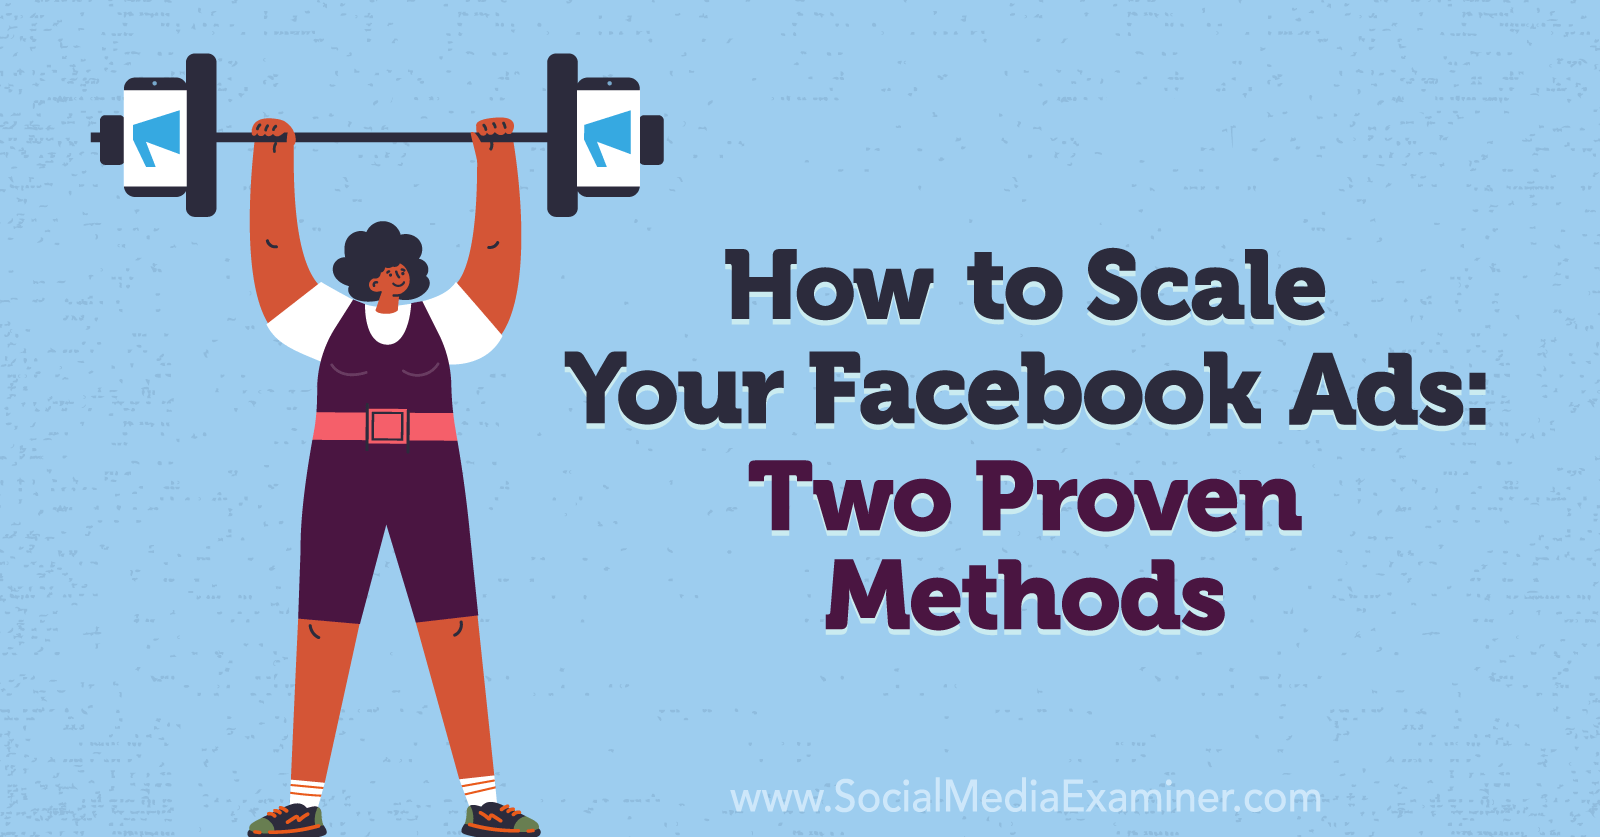 How to Scale Your Facebook Ads: Two Proven Methods by Charlie Lawrance on Social Media Examiner.